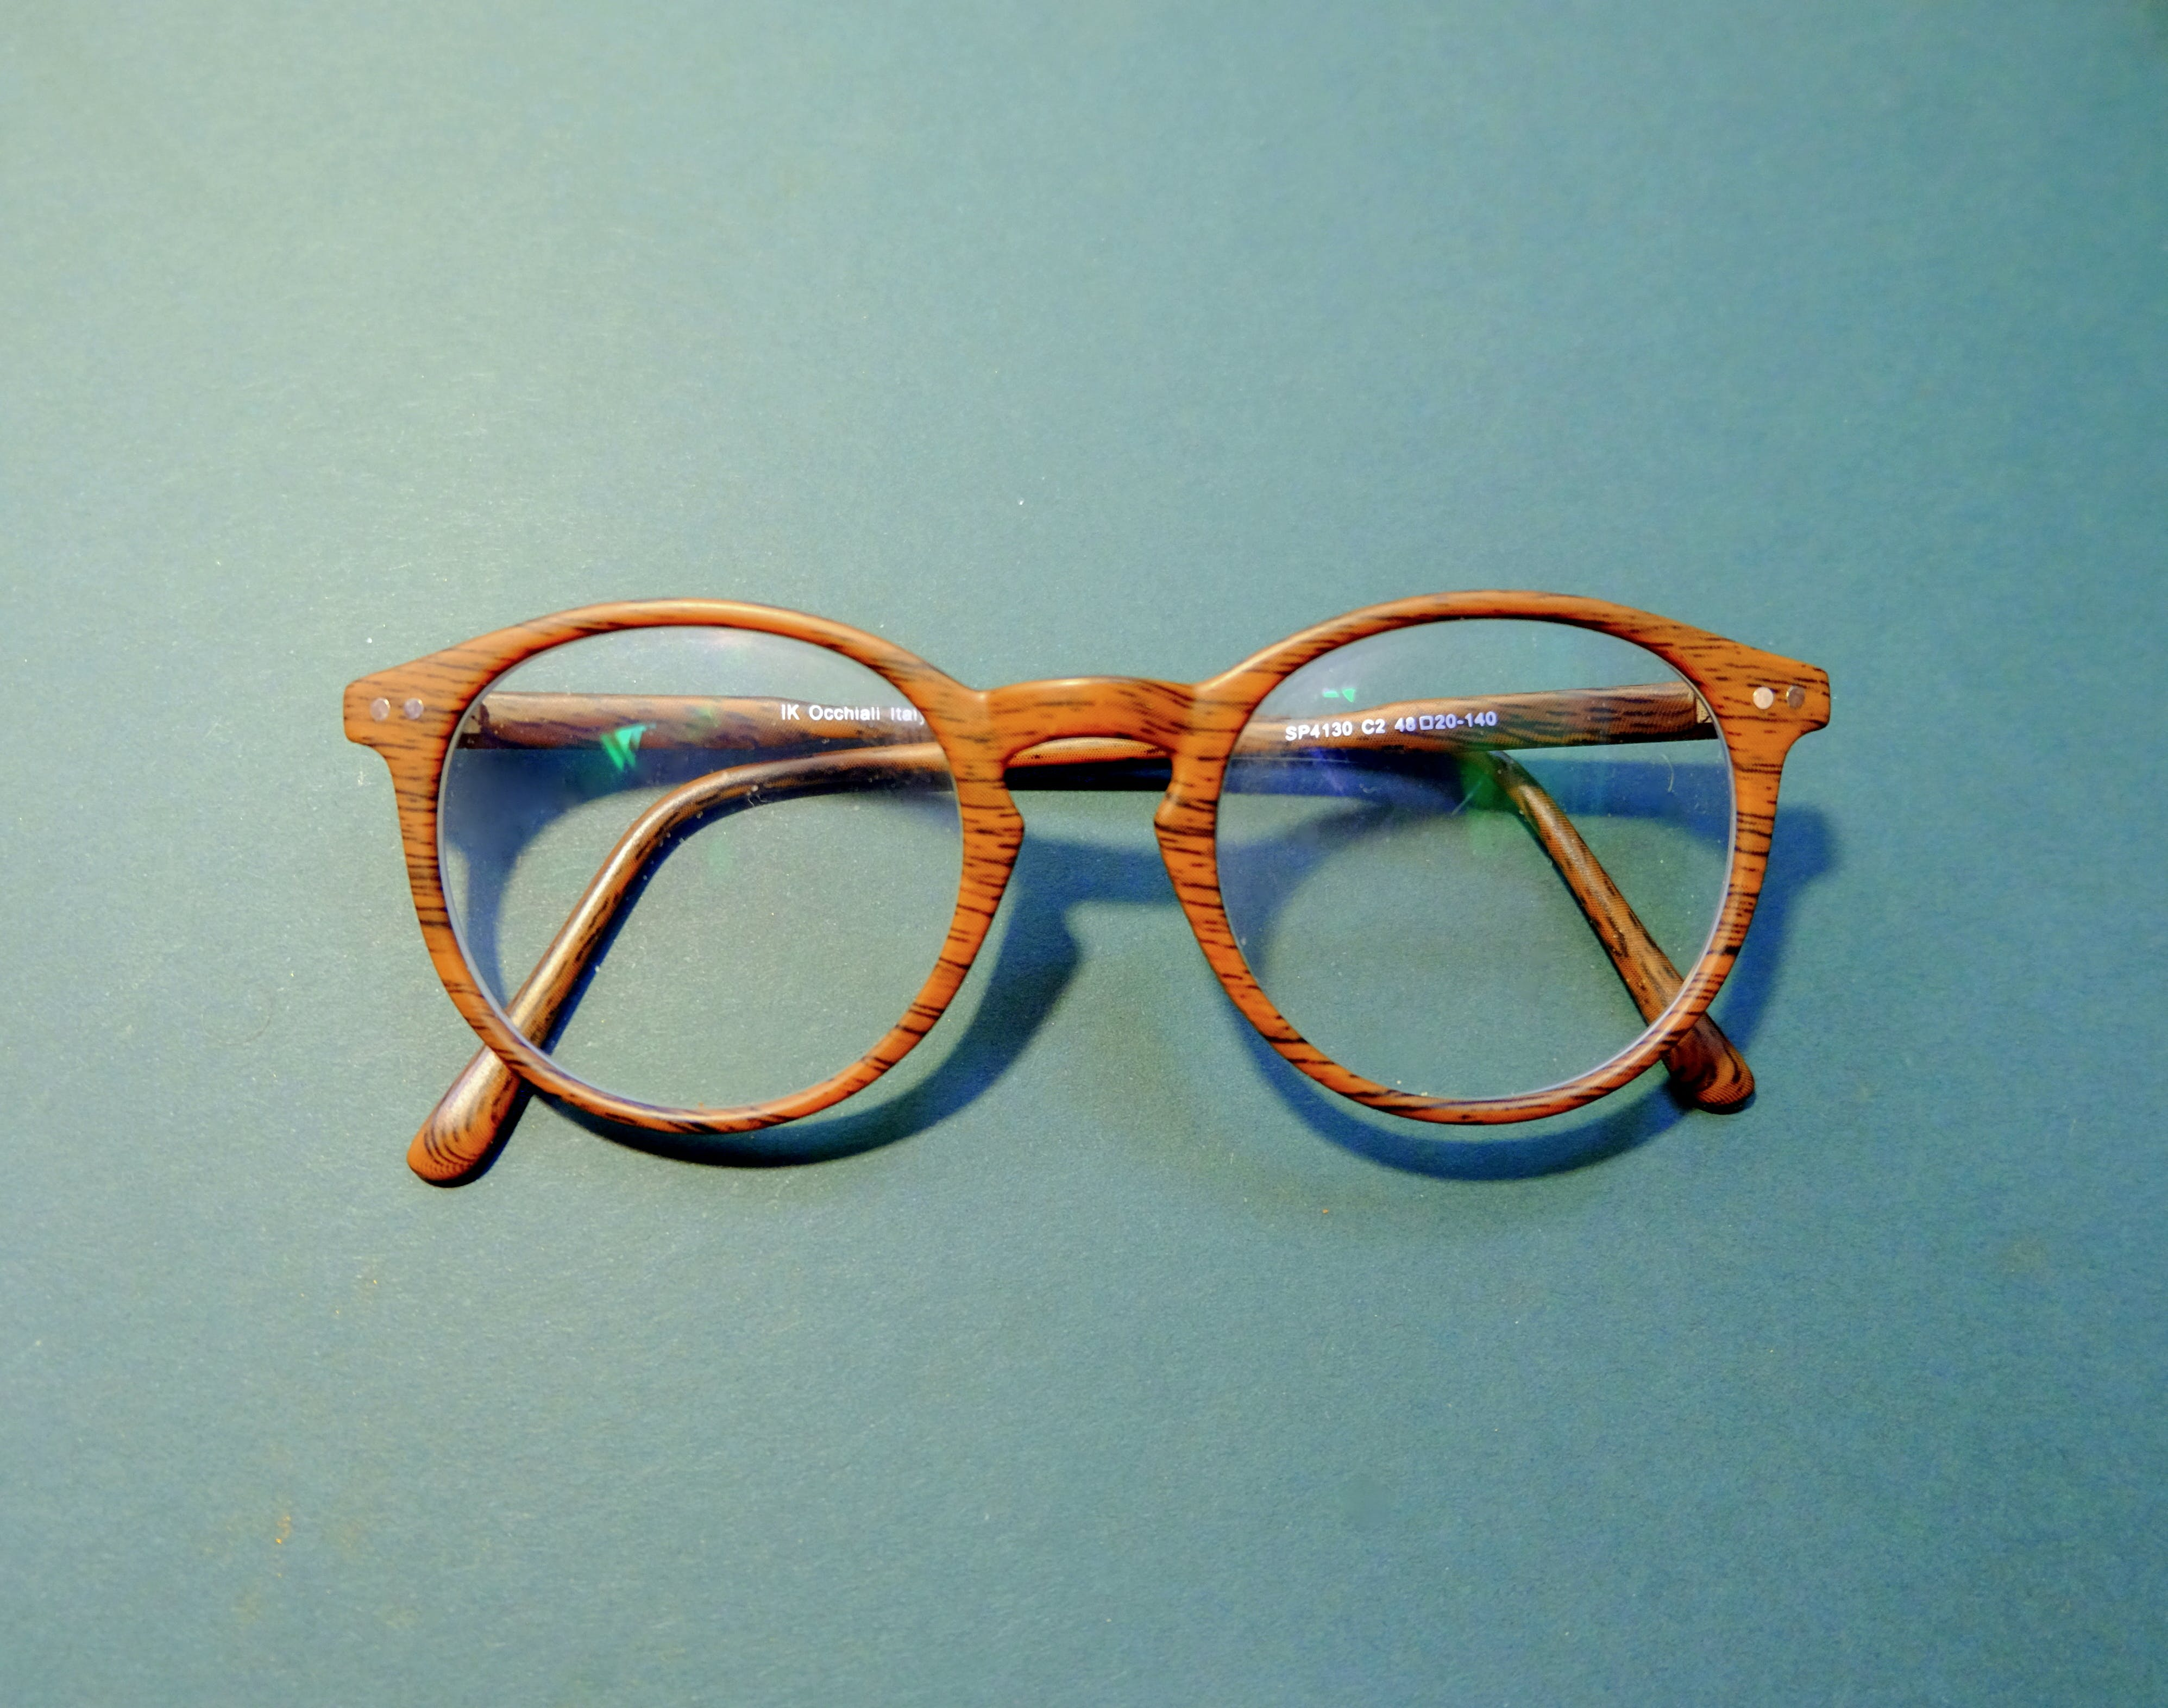 Brown-framed Eyeglasses